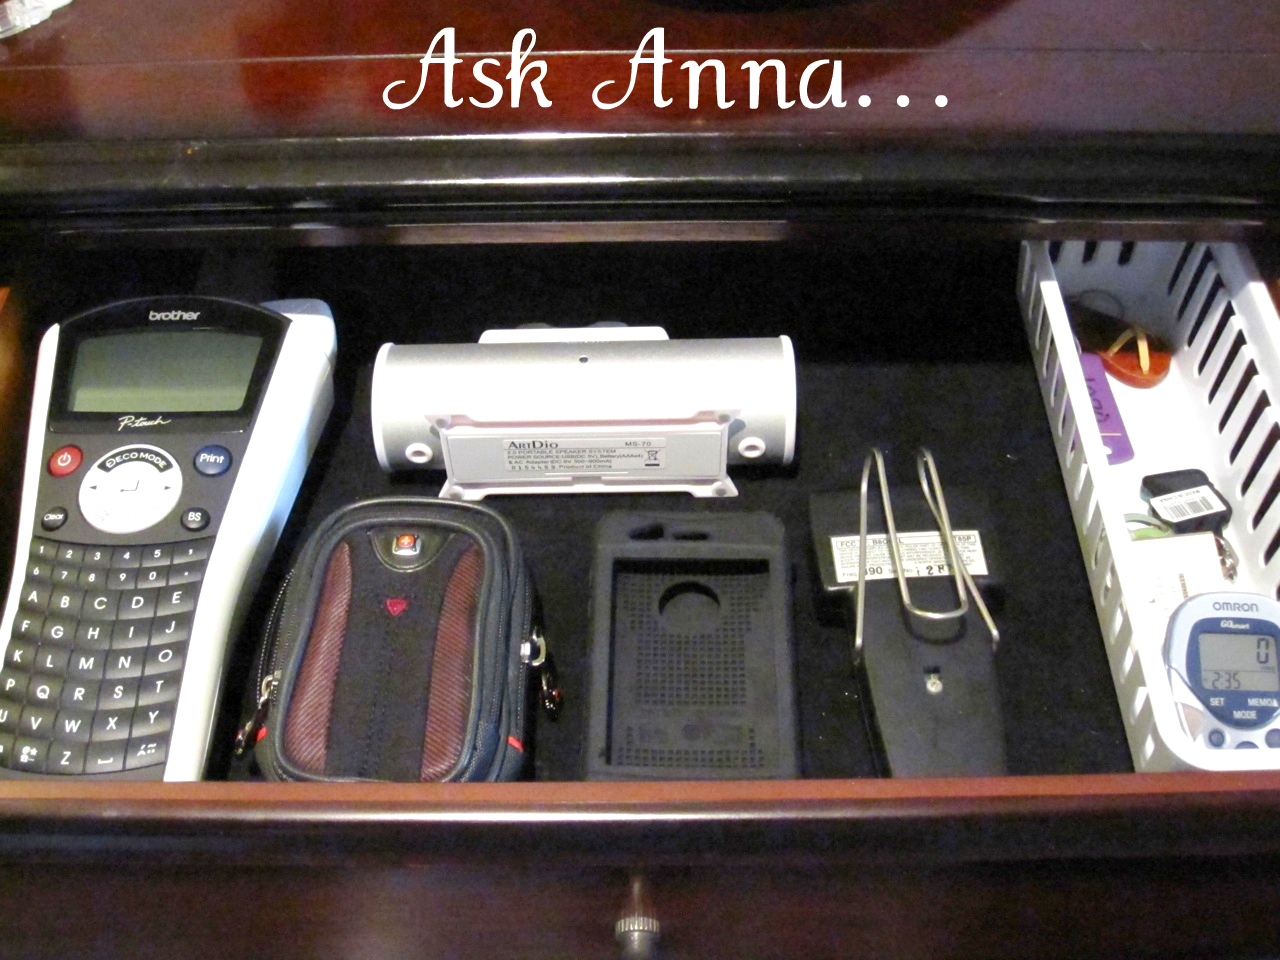 How to organize cords - Ask Anna